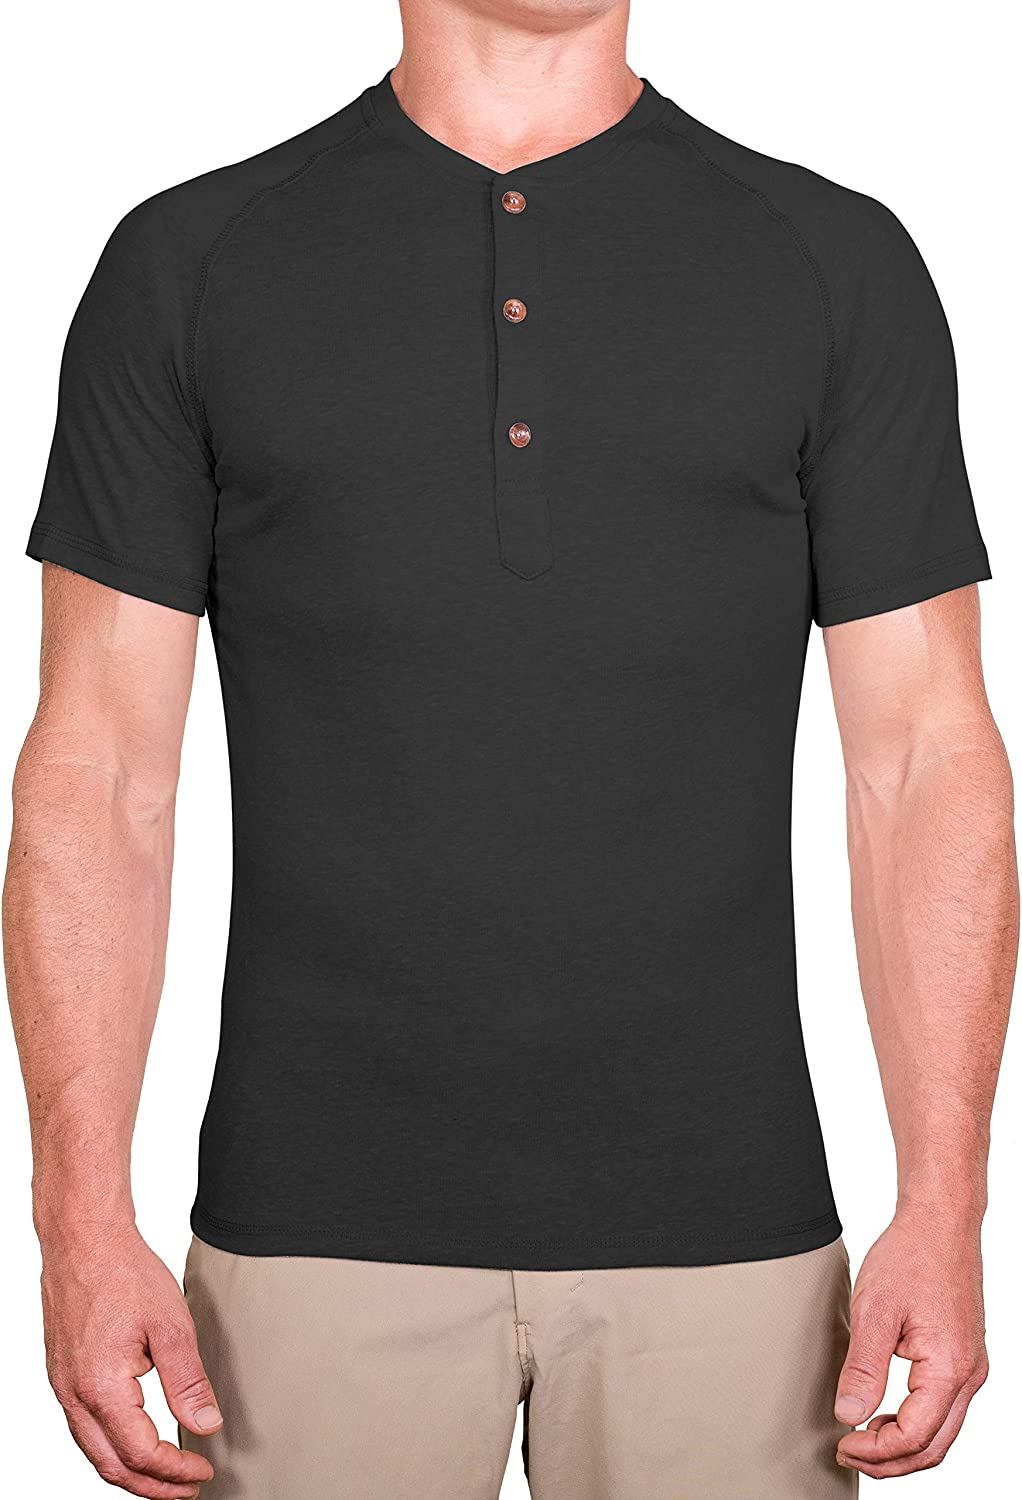 CC Slim Fort Worth Mall Fit Short Sleeve Henley Charlotte Mall Shirts Soft Casual Men for